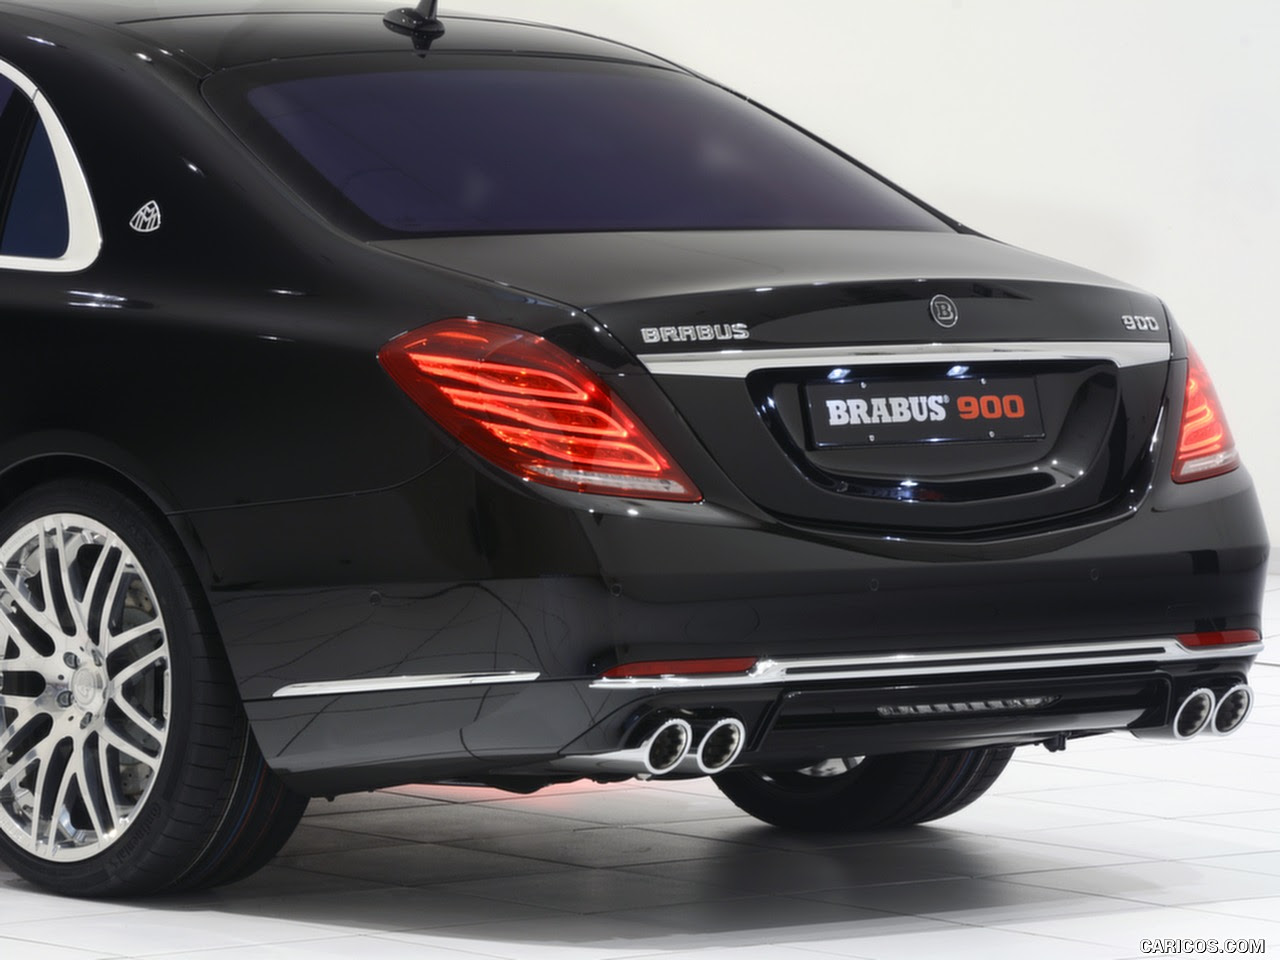 2016 BRABUS 900 Mercedes-Maybach S600 - Rear | HD Wallpaper #29